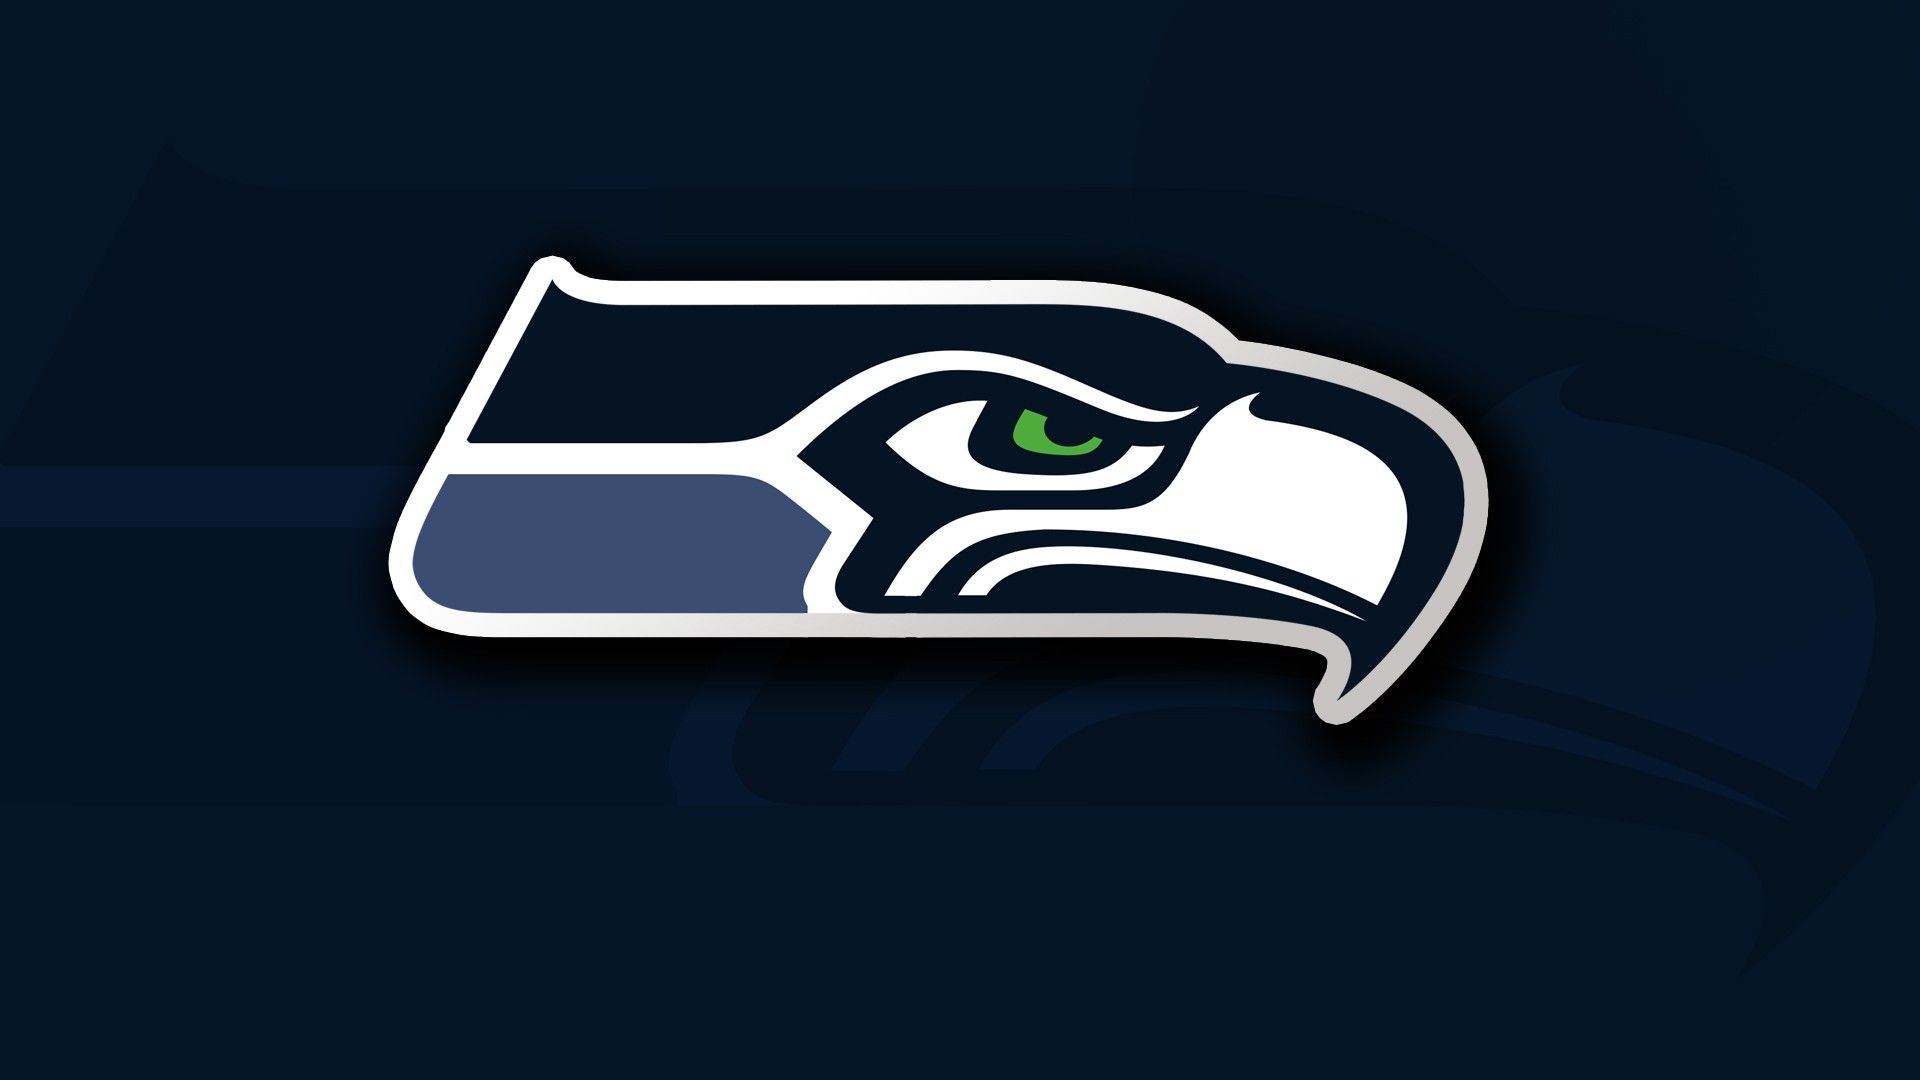 Seattle Seahawks Wallpaper Hd 2020 Nfl Football Wallpapers Seattle Seahawks Seattle Seahawks Logo Seahawks